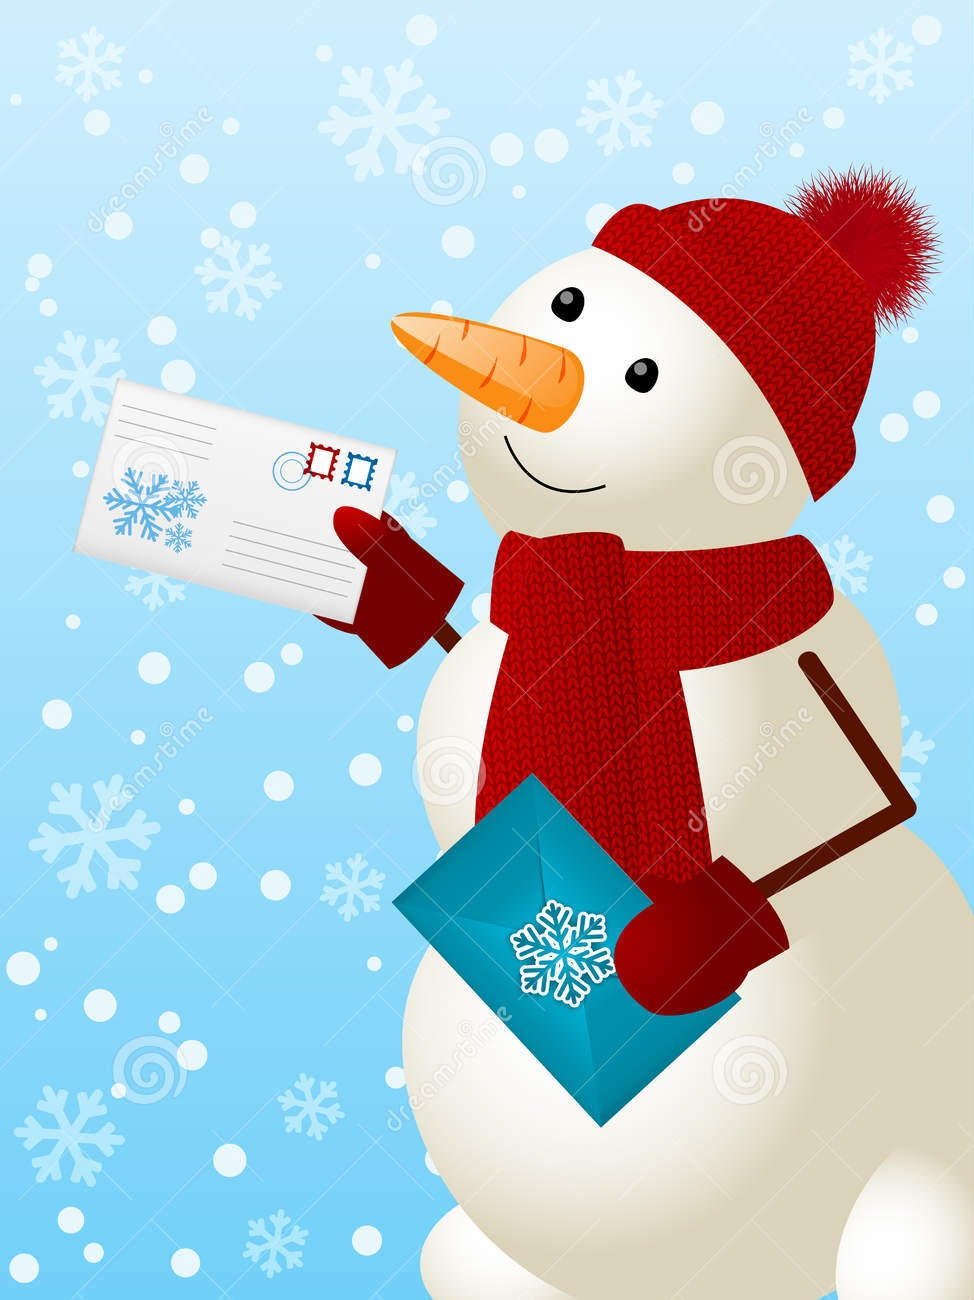 funny-snowman-christmas-mail-34976738